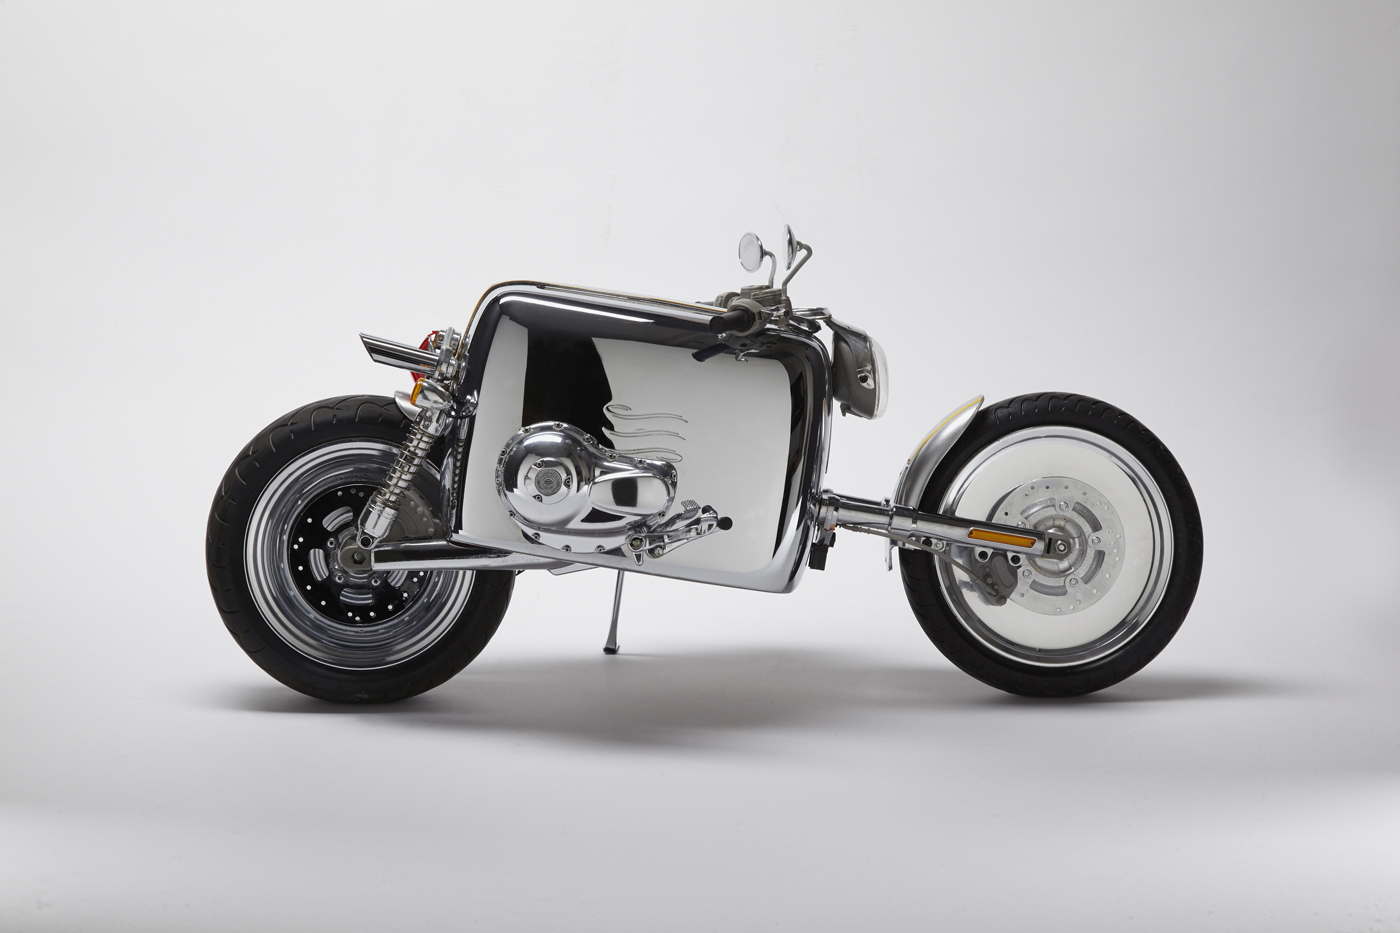 Toaster motorcycle